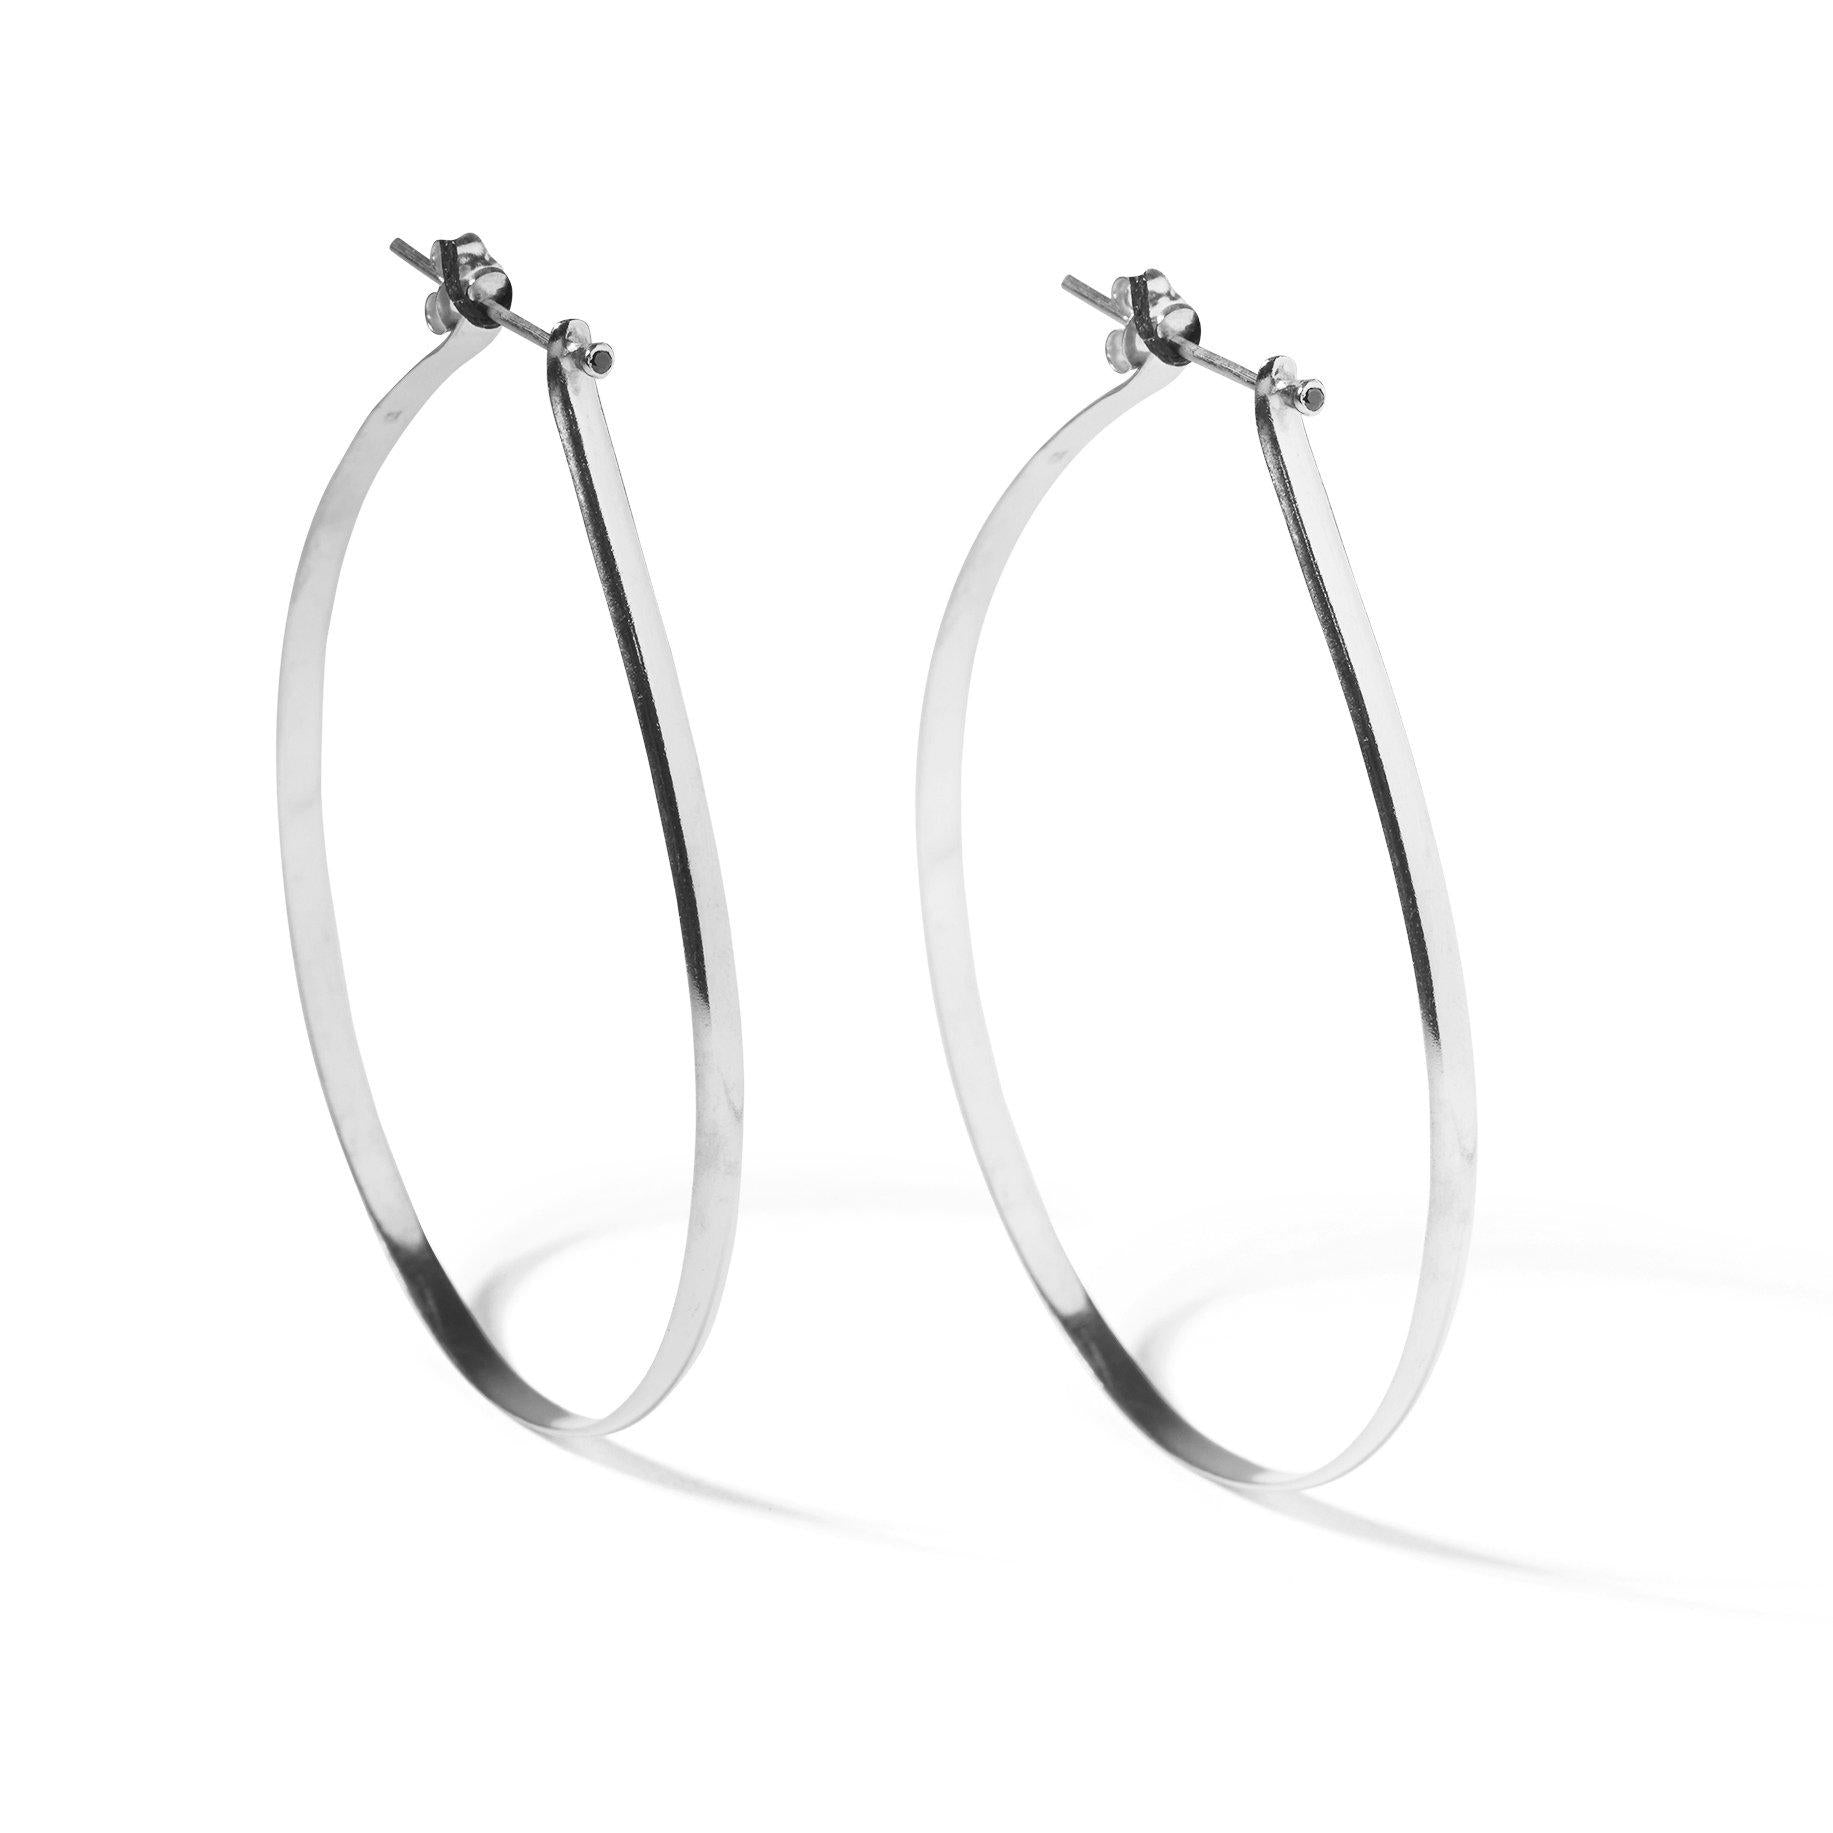 The Silver Spiked Hoops-Earrings-Black Betty Design